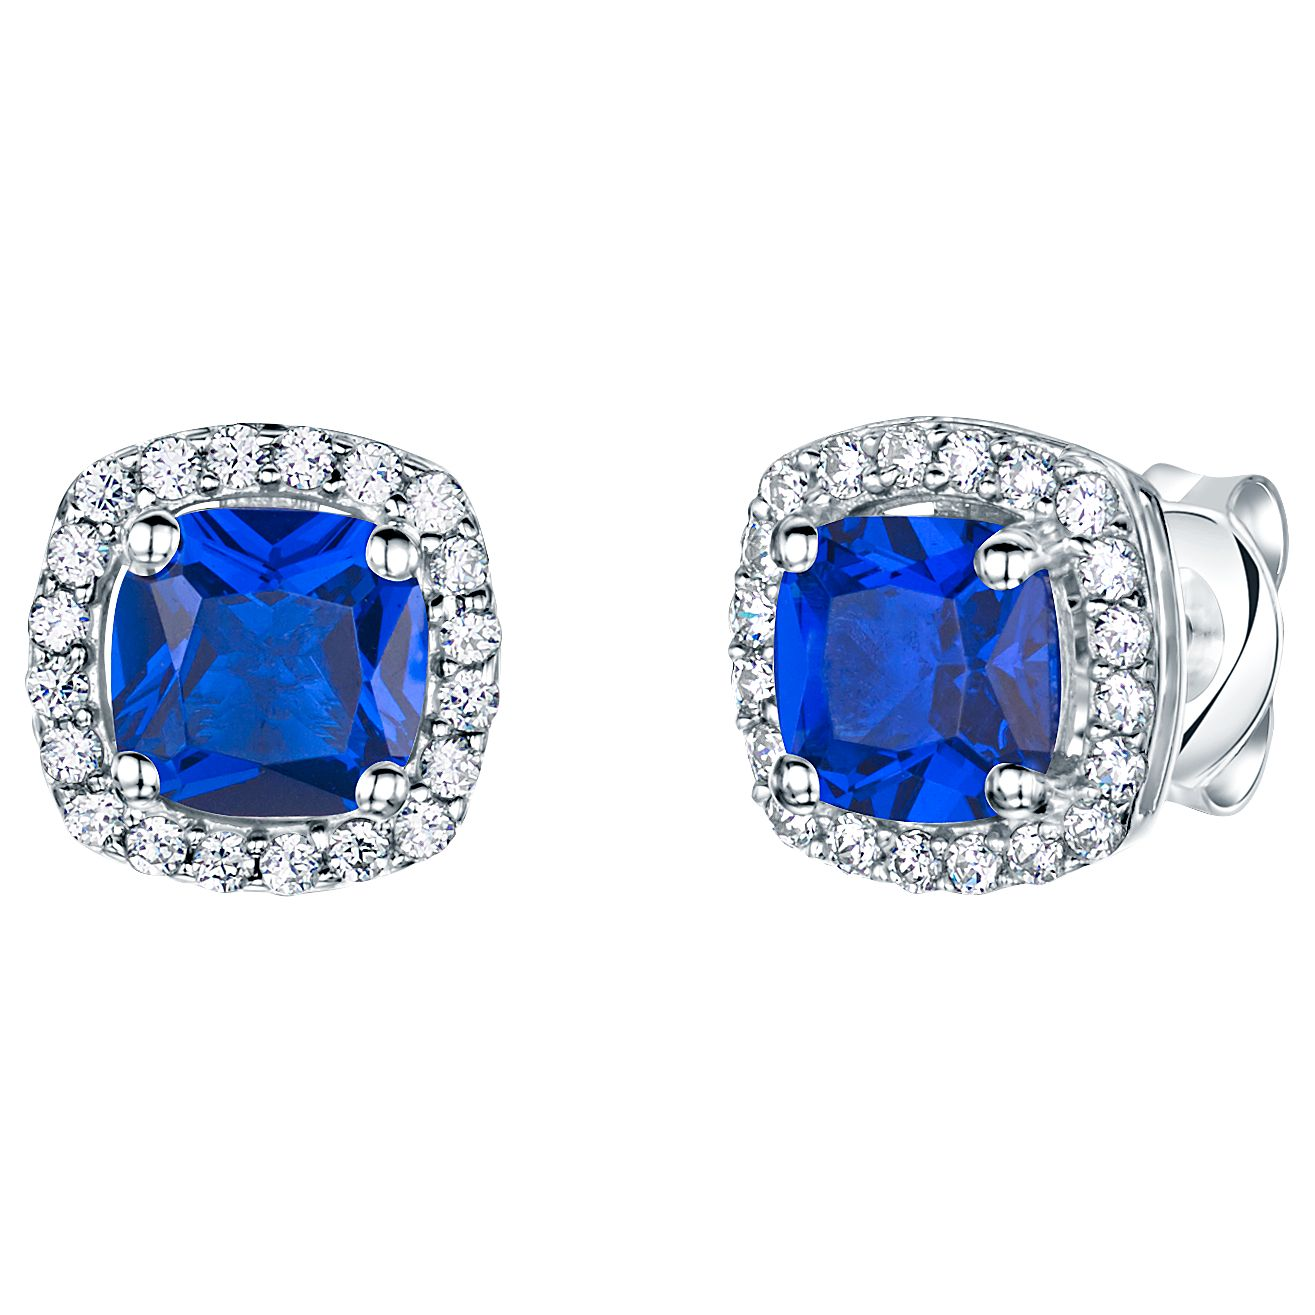 Jools by Jenny Brown Jools by Jenny Brown Pavé Surround Cushion Square Cubic Zirconia Stud Earrings